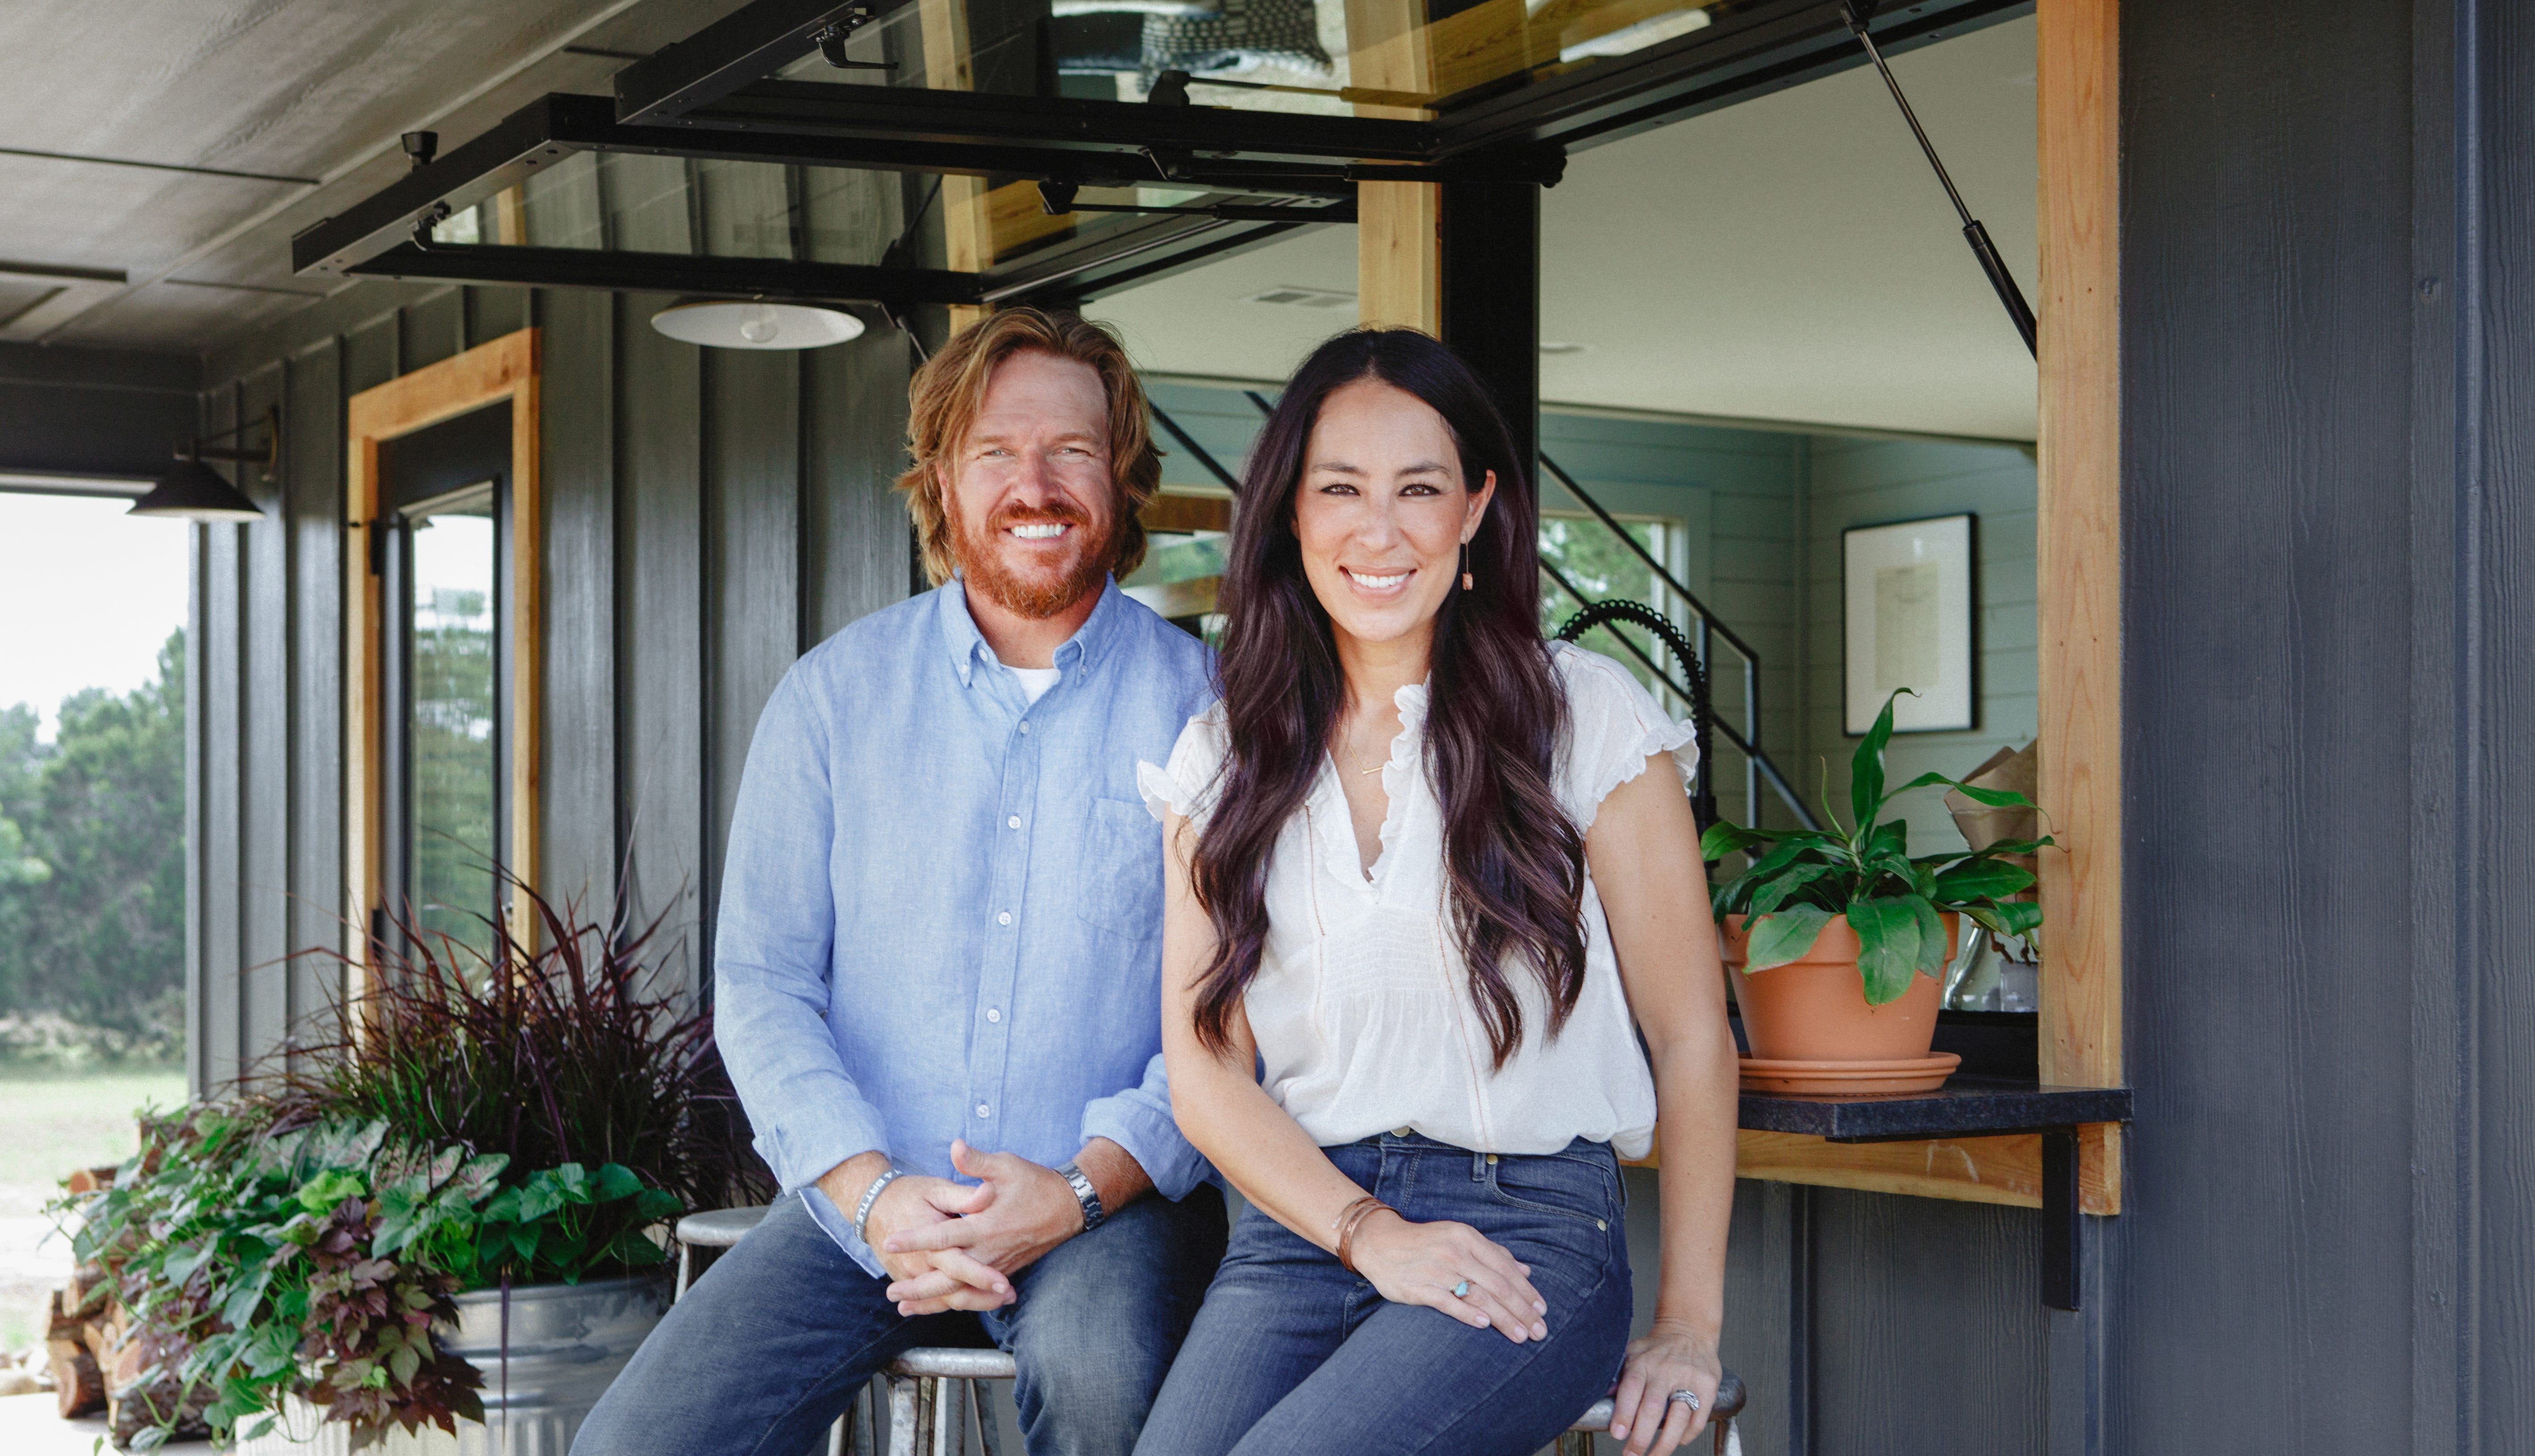 Joanna Gaines Opens Up About The Anxiety Of Being Perfect On Instagram